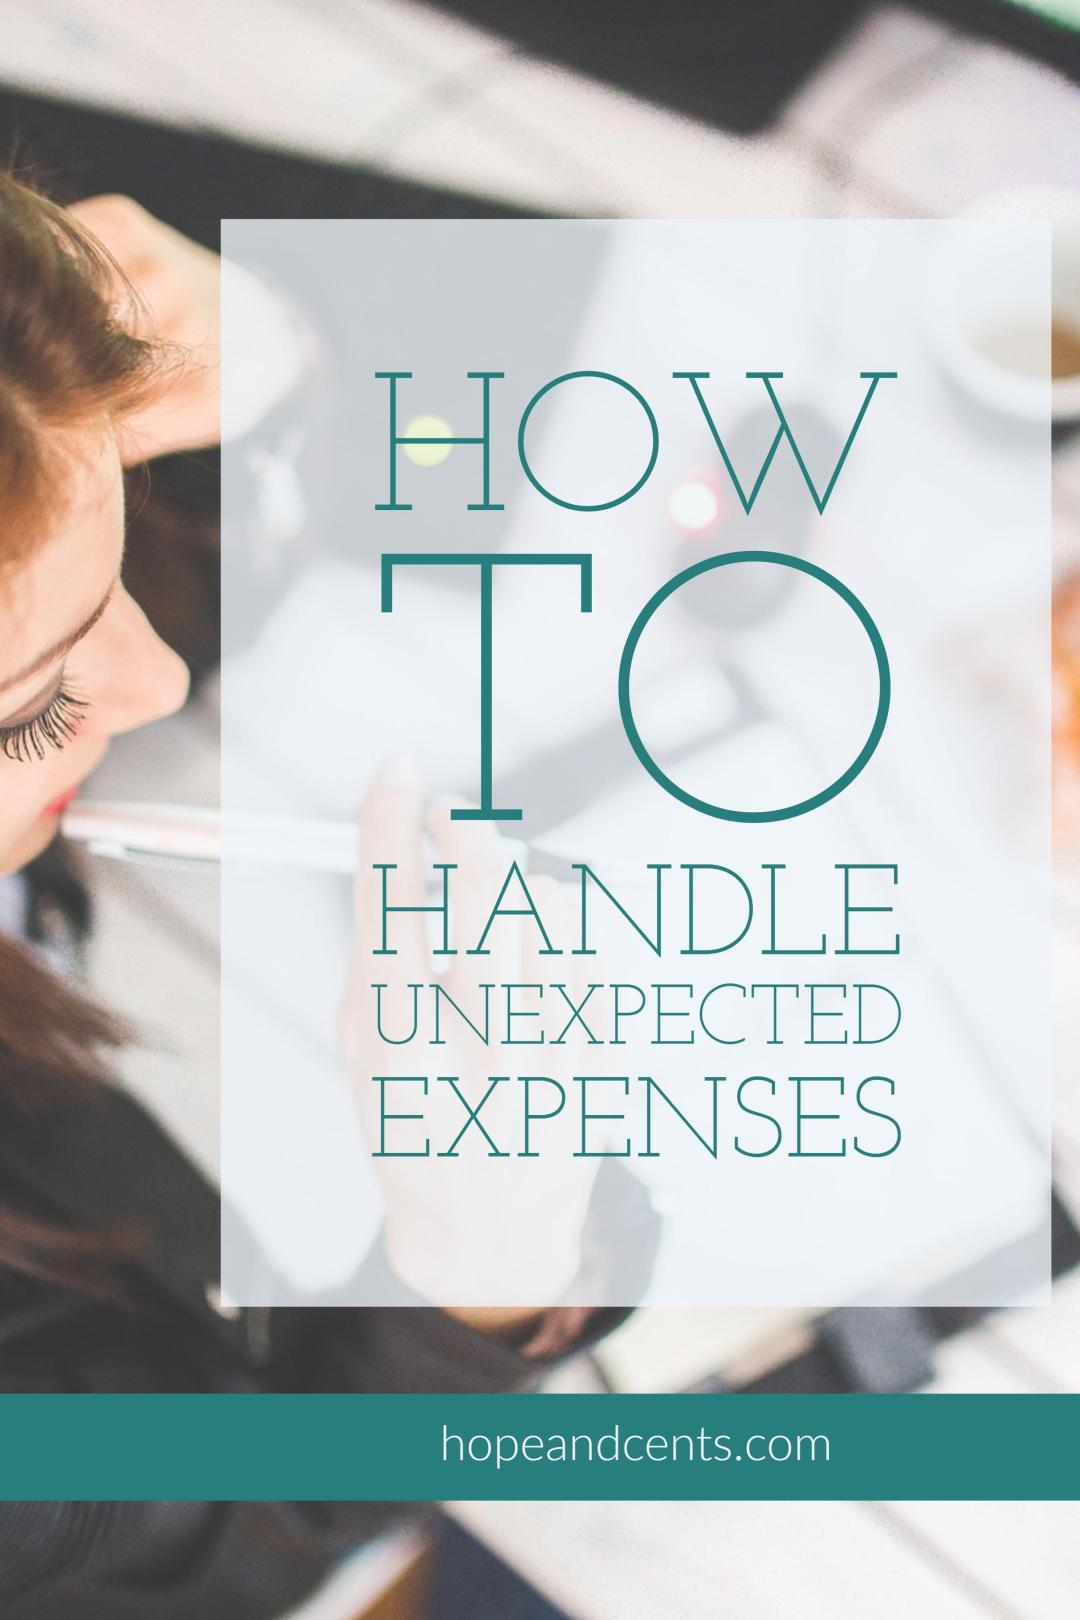 A common reason people give for not budgeting is that unexpected expenses always come up which prevent them from following the budget.